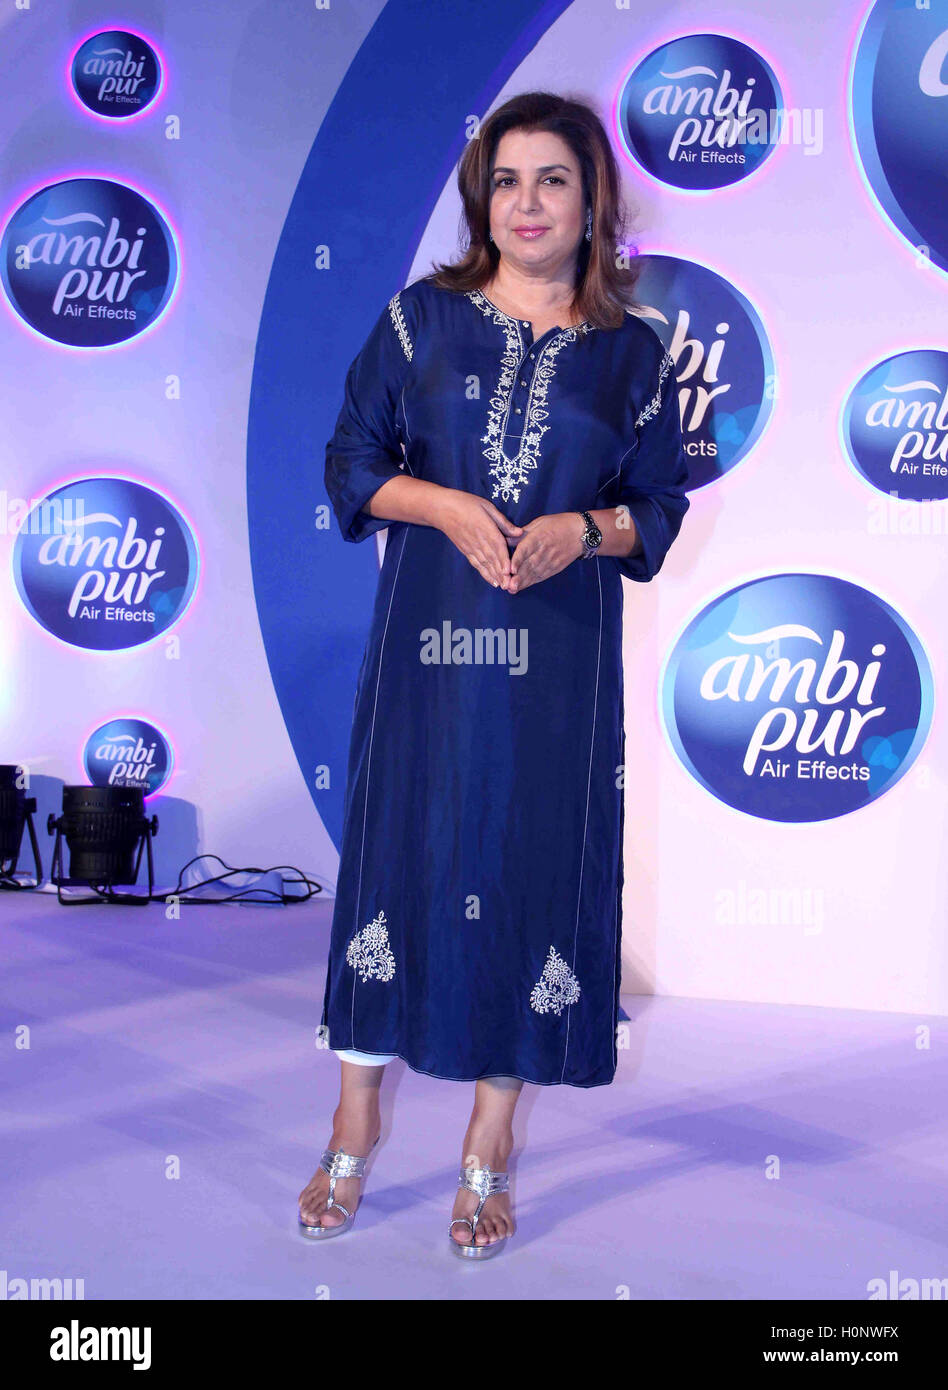 Bollywood filmmaker Farah Khan during a promotional event by Ambi Pur, in Mumbai, India on September 13, 2016. - Stock Image